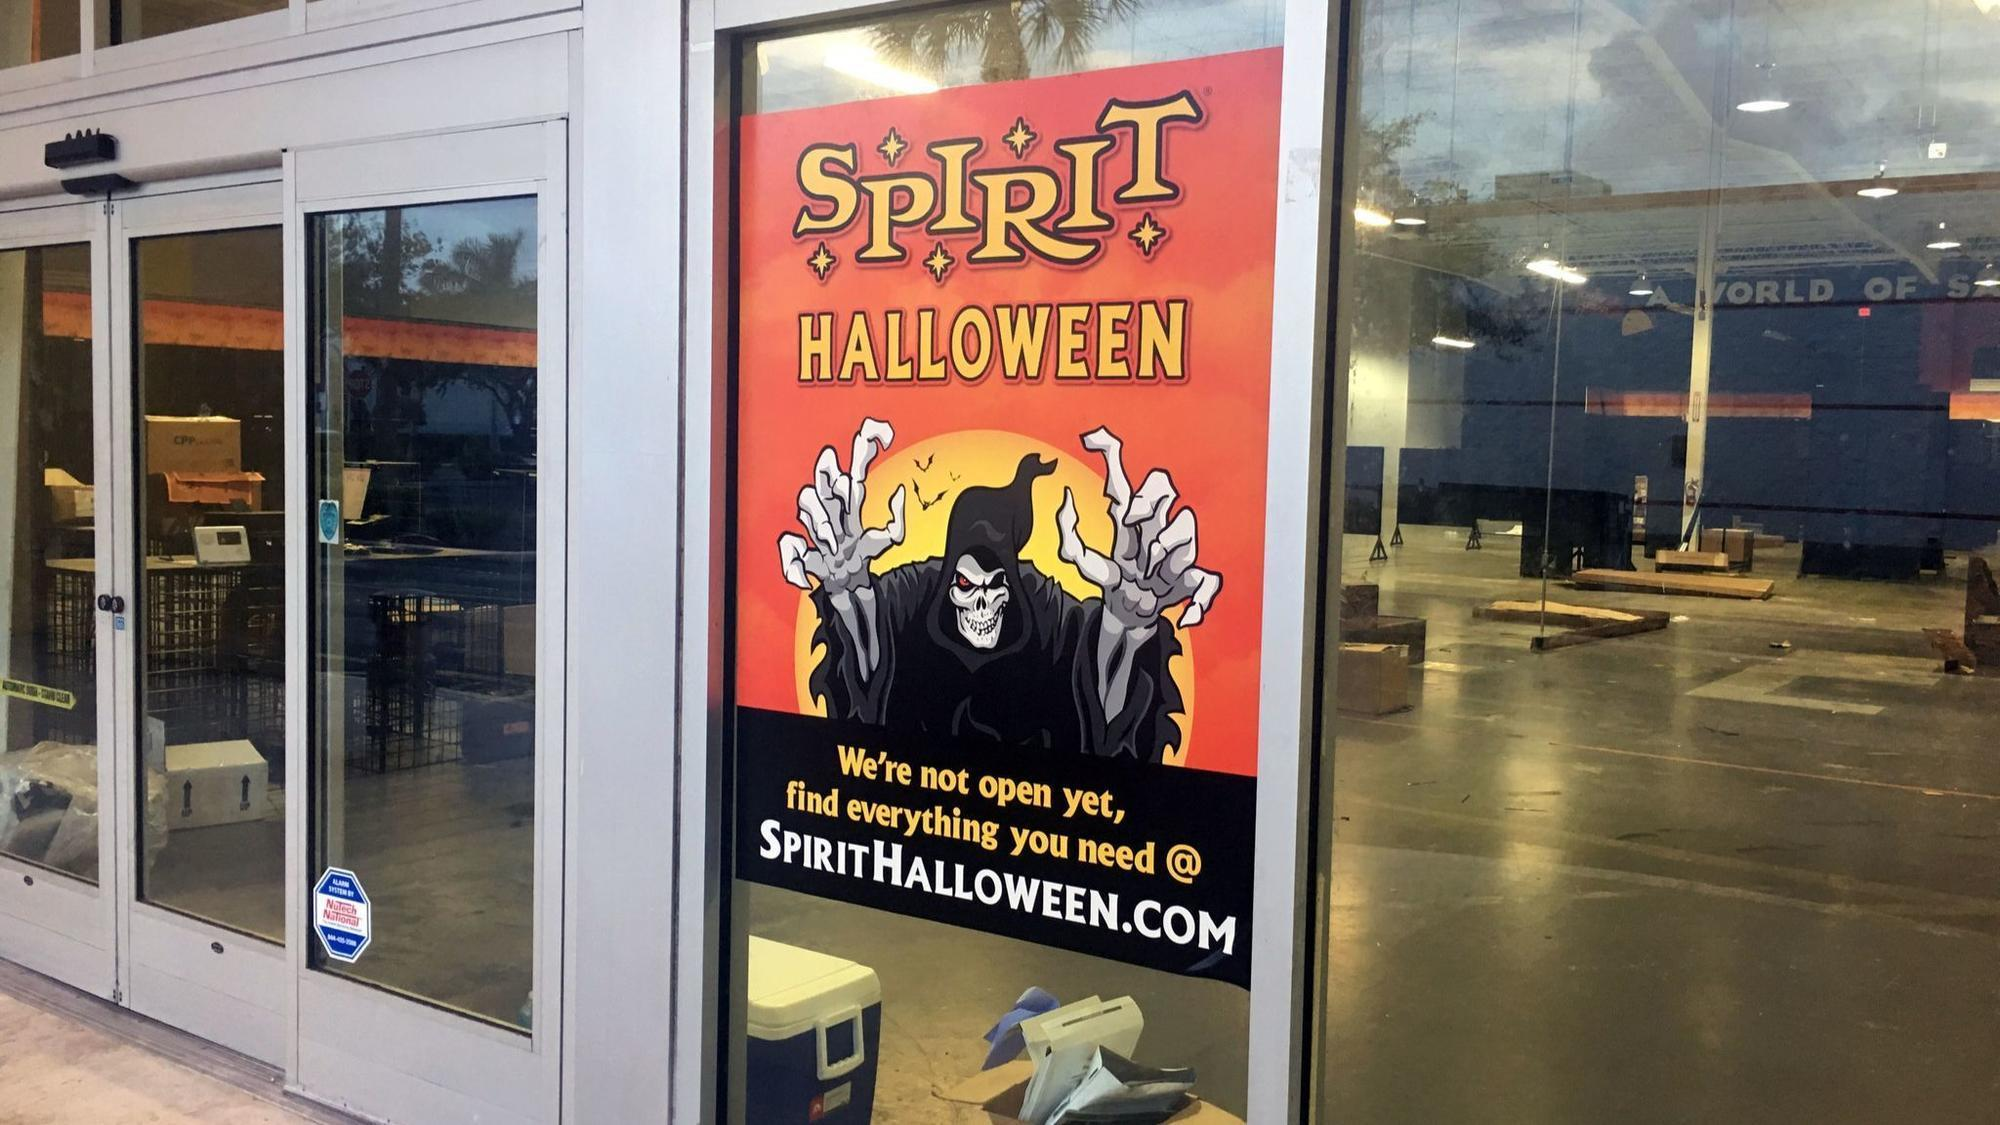 spirit halloween stores open in some former toys 'r' us locations